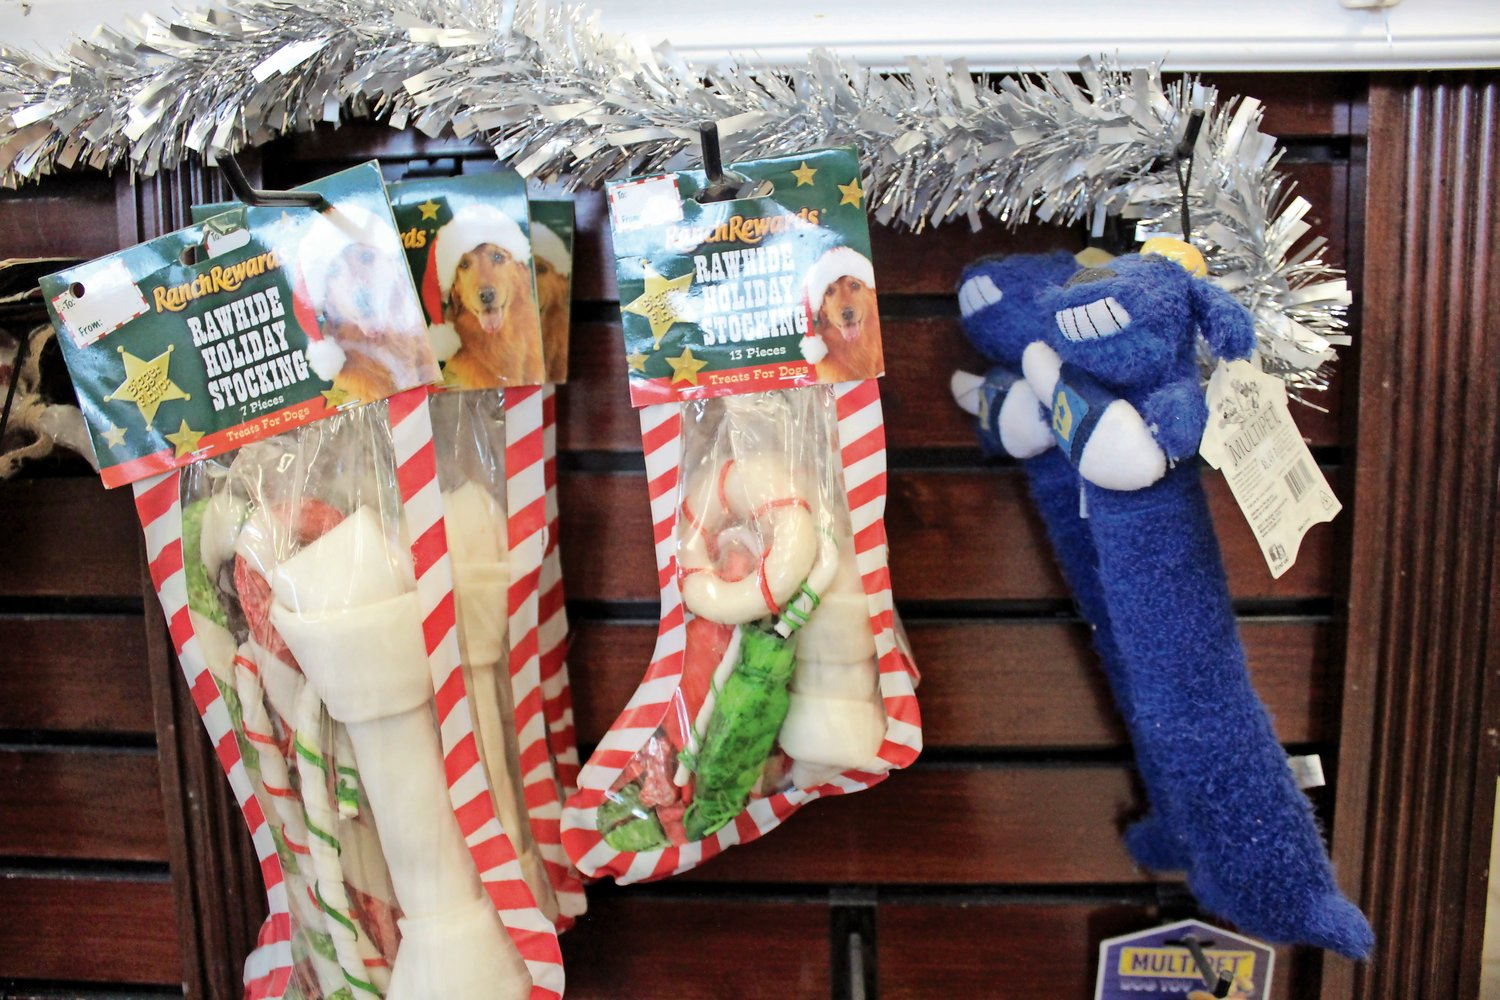 Customers can buy dog treats and toys at Puppy Love in Franklin Square.